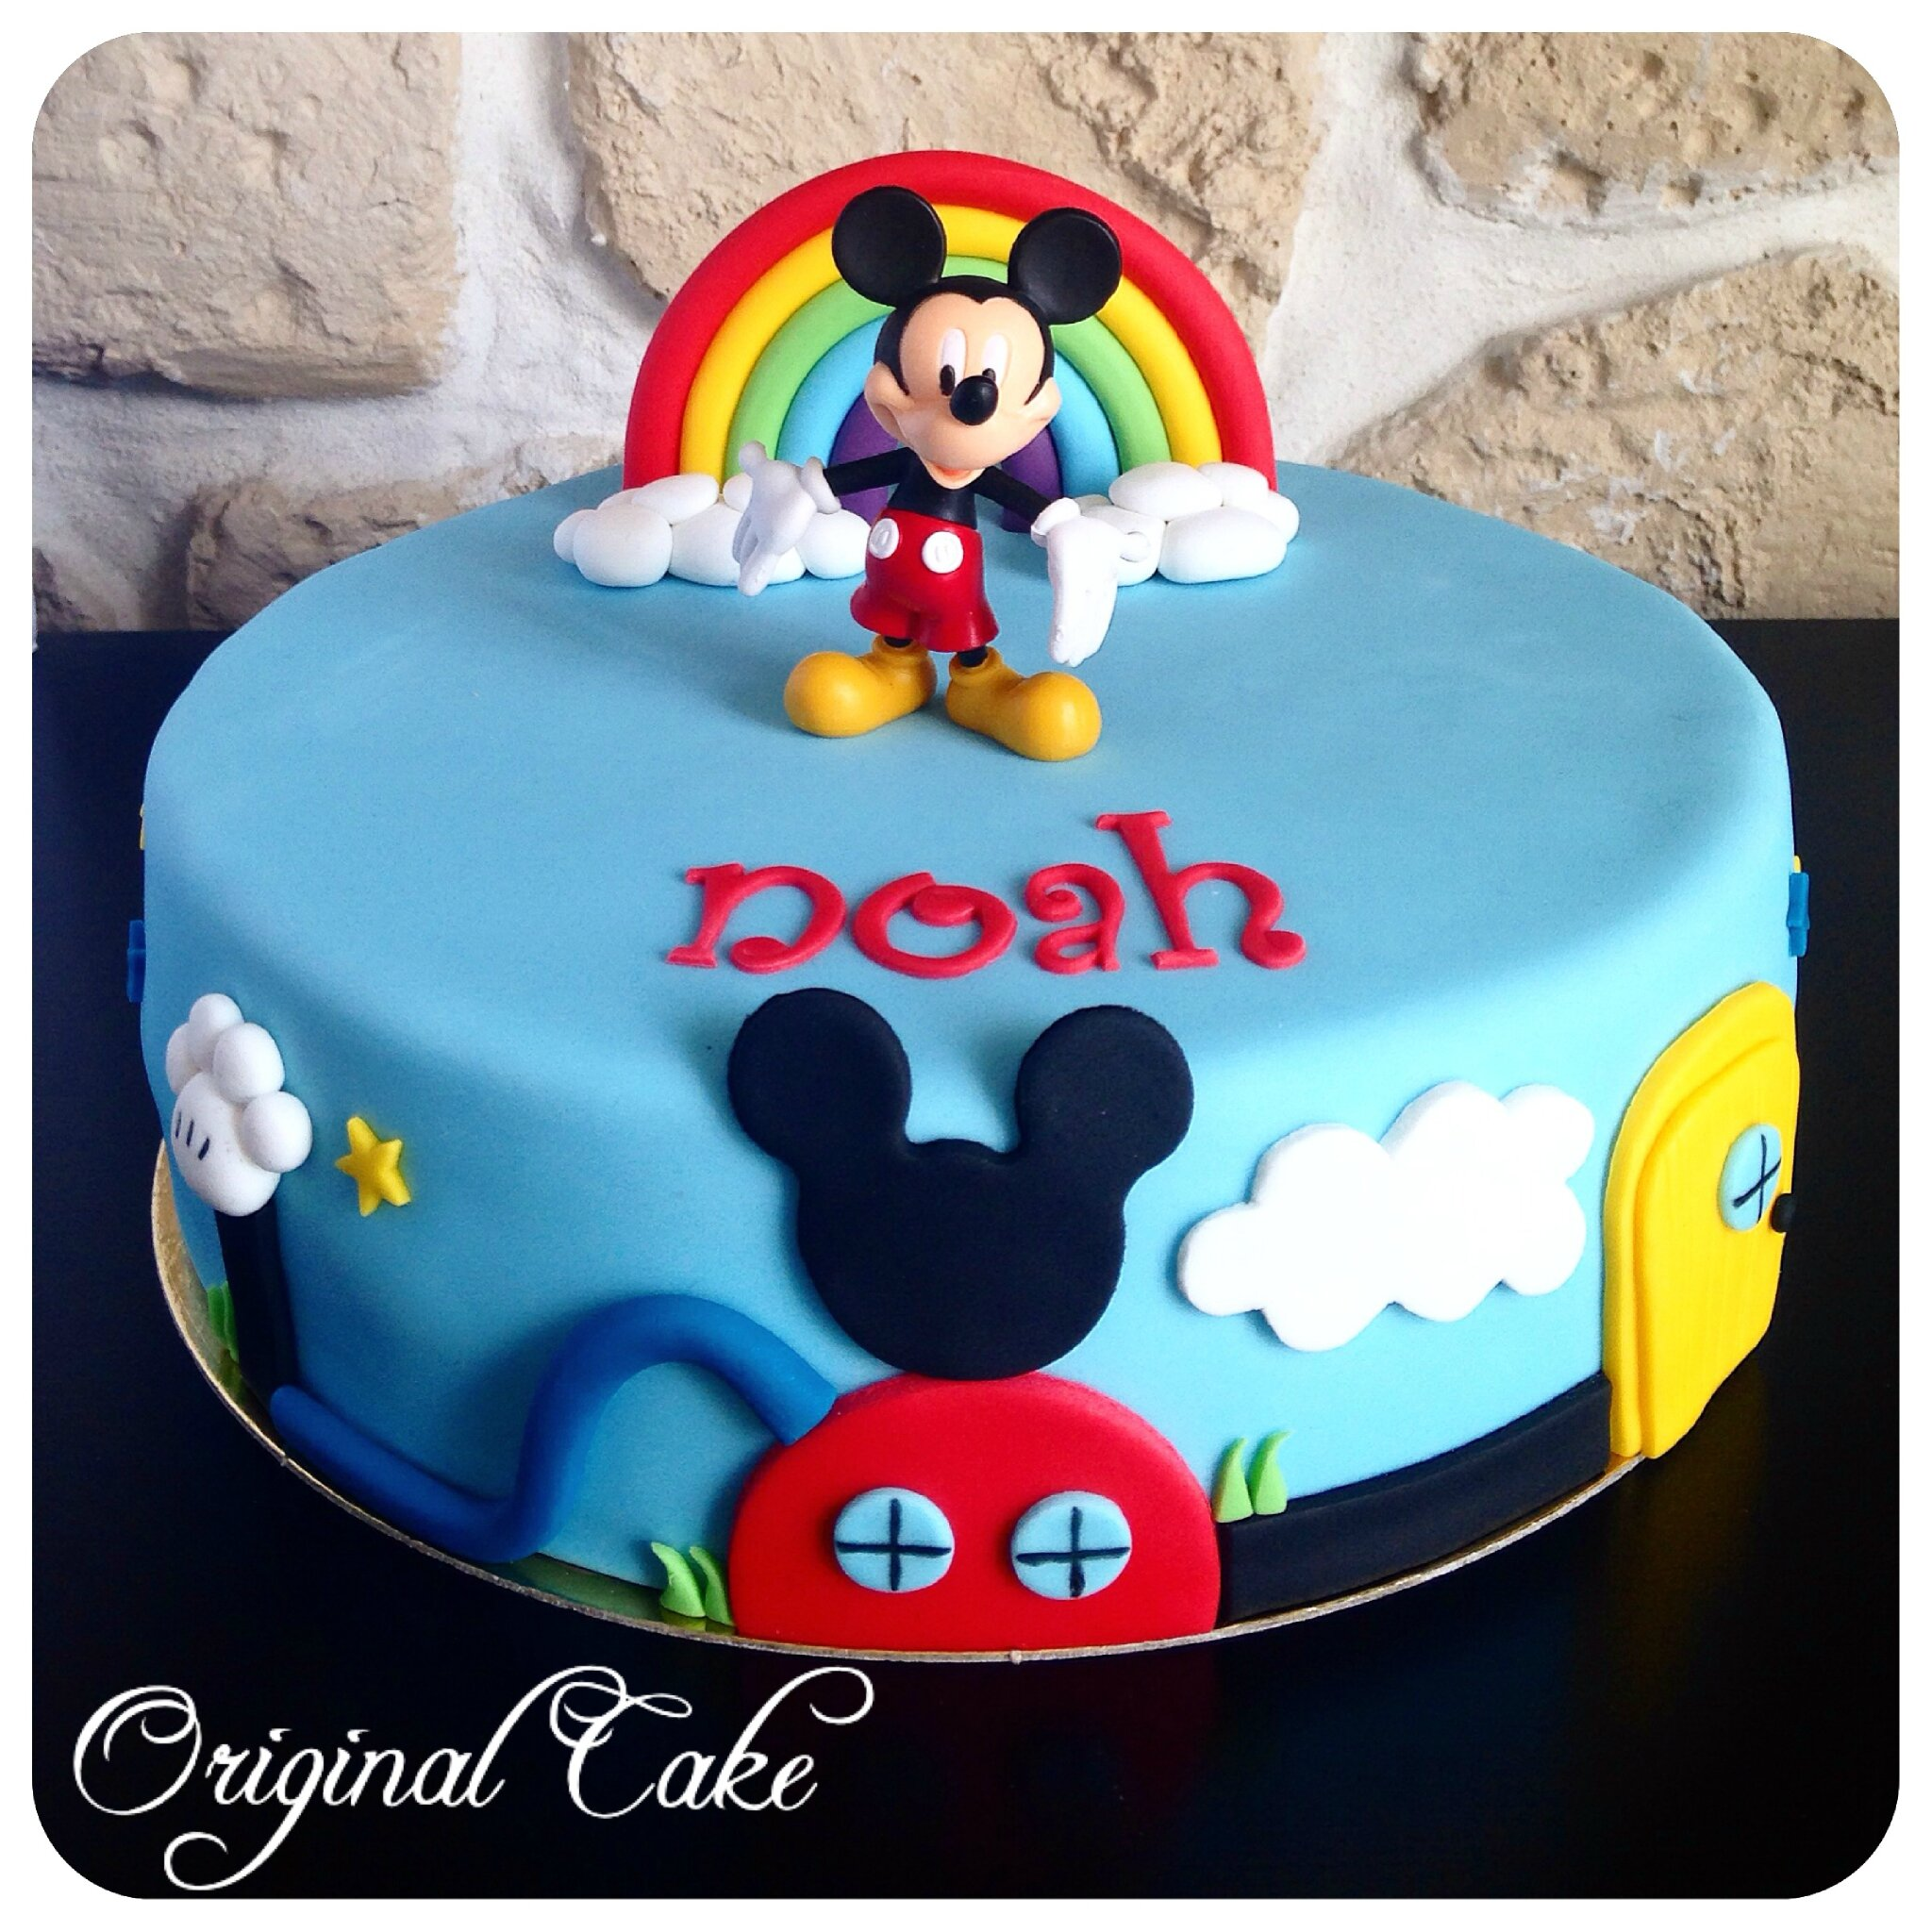 Célèbre Gateau la maison de mickey – Home baking for you blog photo KE04